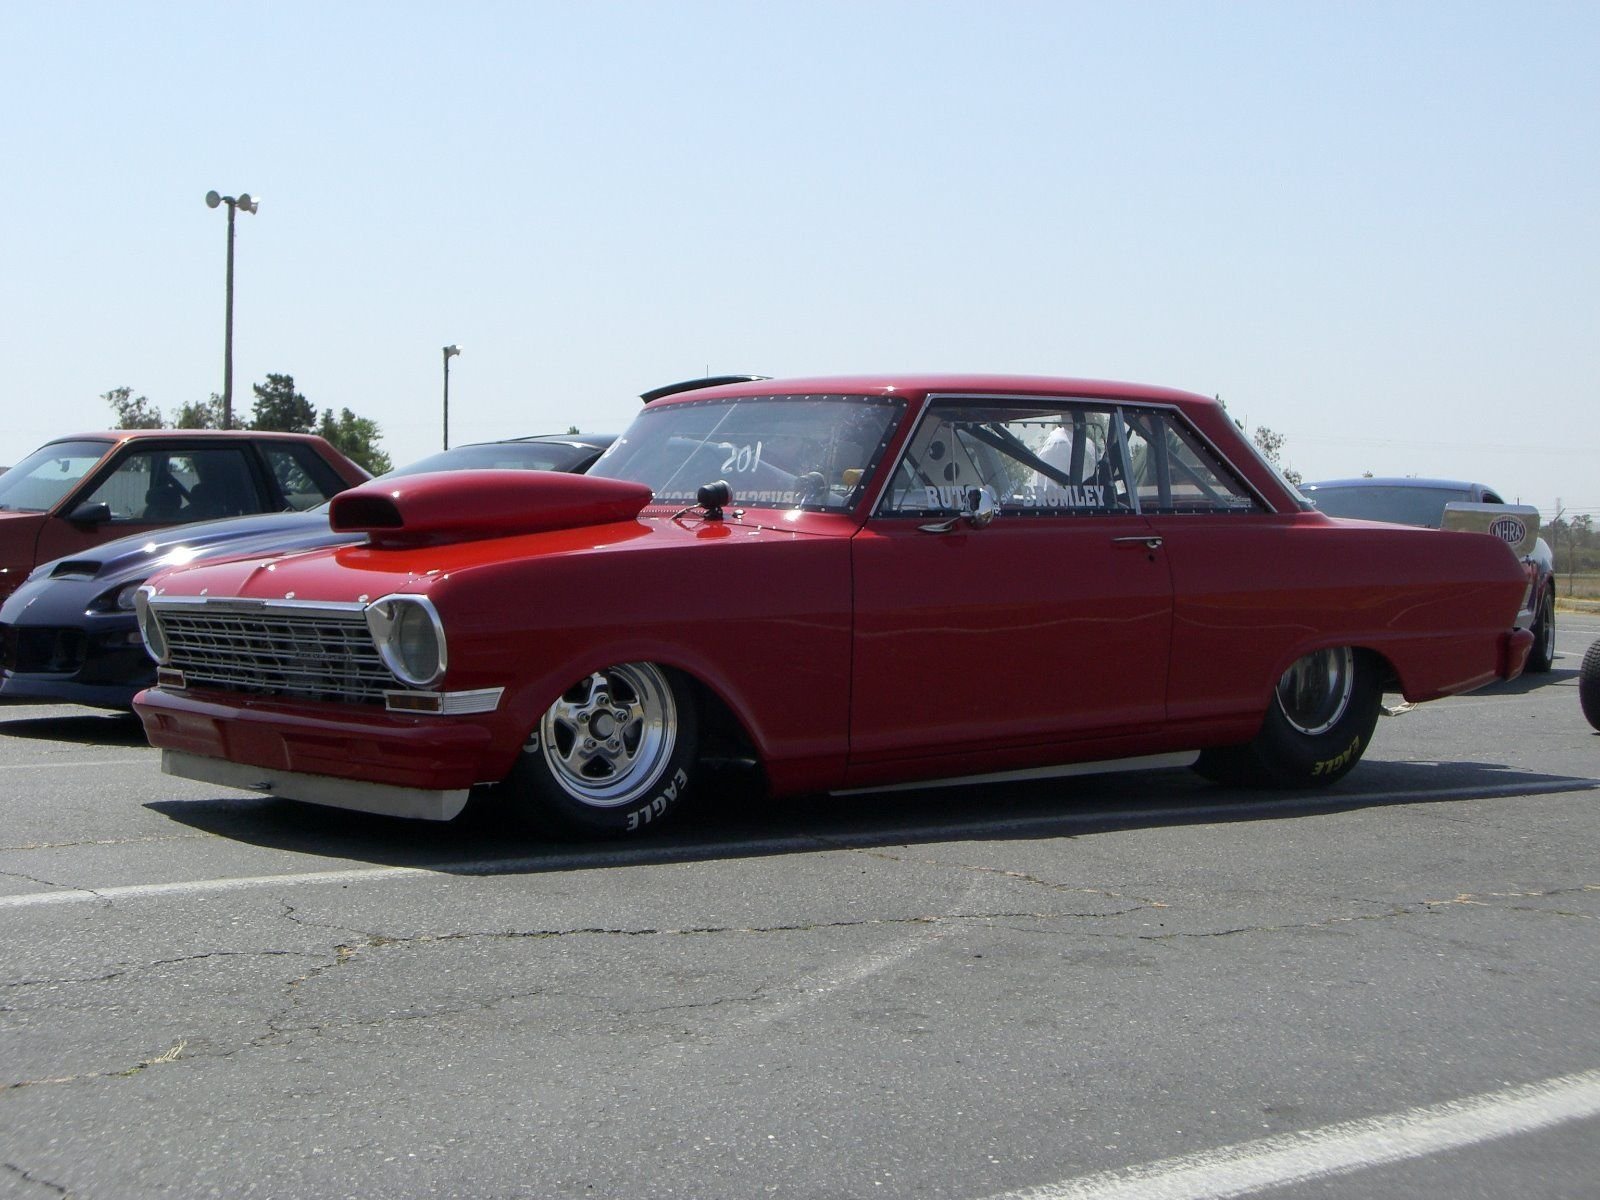 1964 Chevrolet Nova Drag Racing Race Car Chevrolet Nova Race Cars Drag Racing